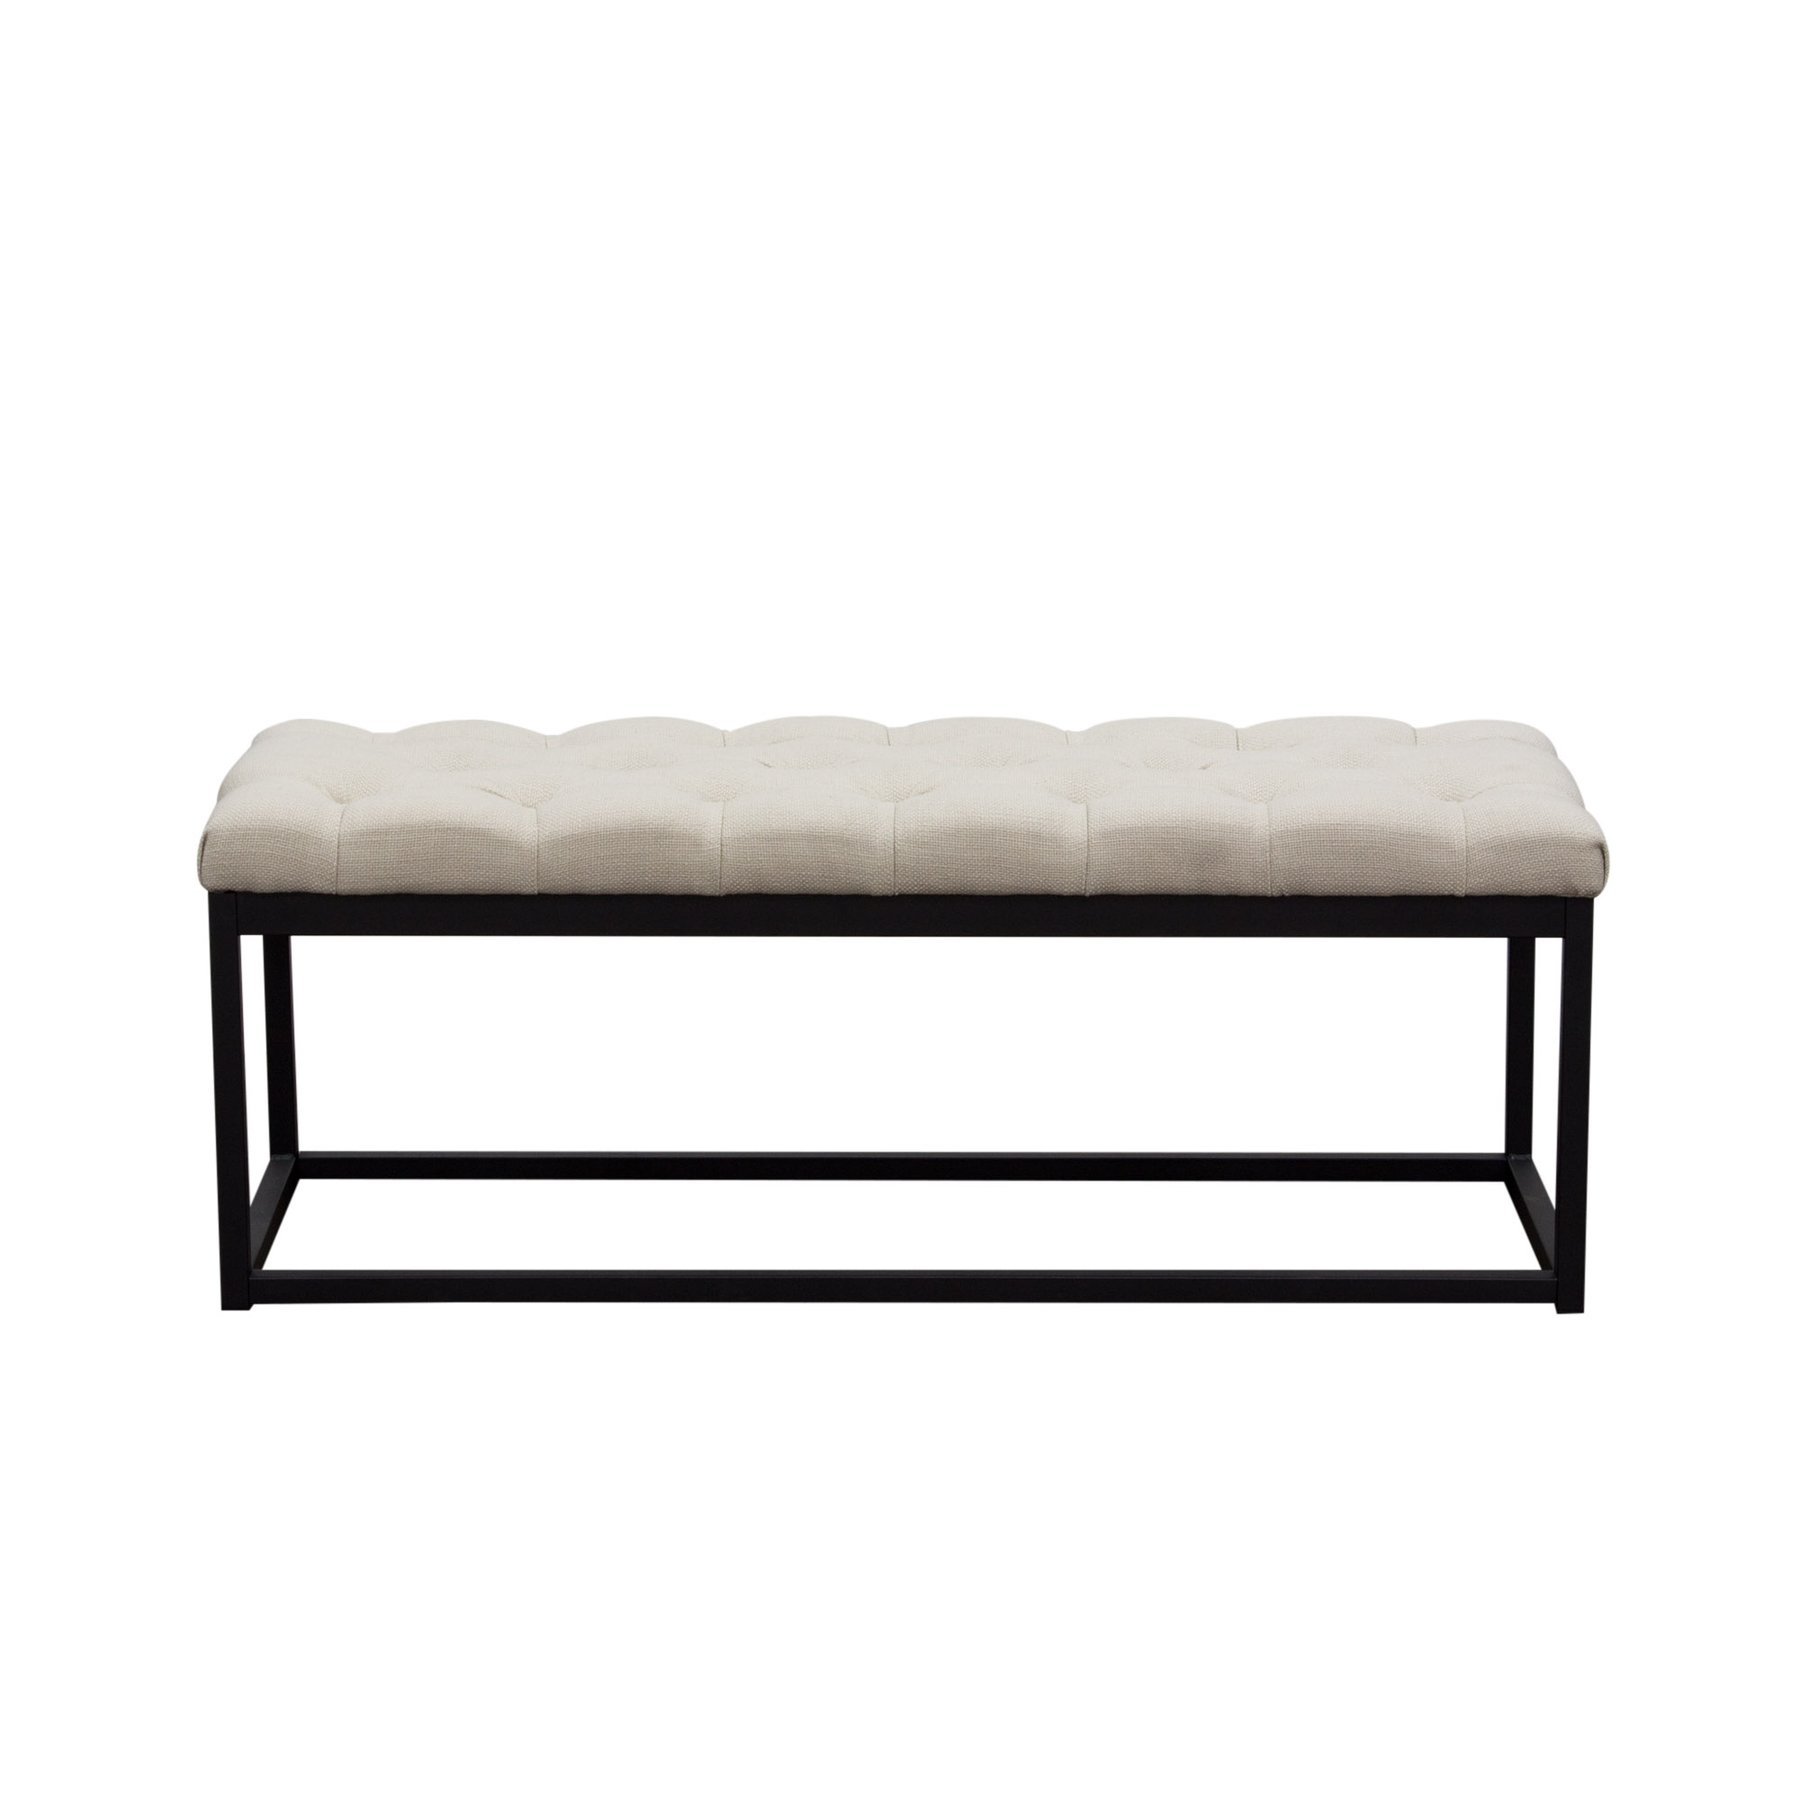 mateo black metal small linen tufted bench desert sand mateobessd signy drum accent table tap pinch zoom sofa tables cabinet with doors patio chair cushions saddle stool dining